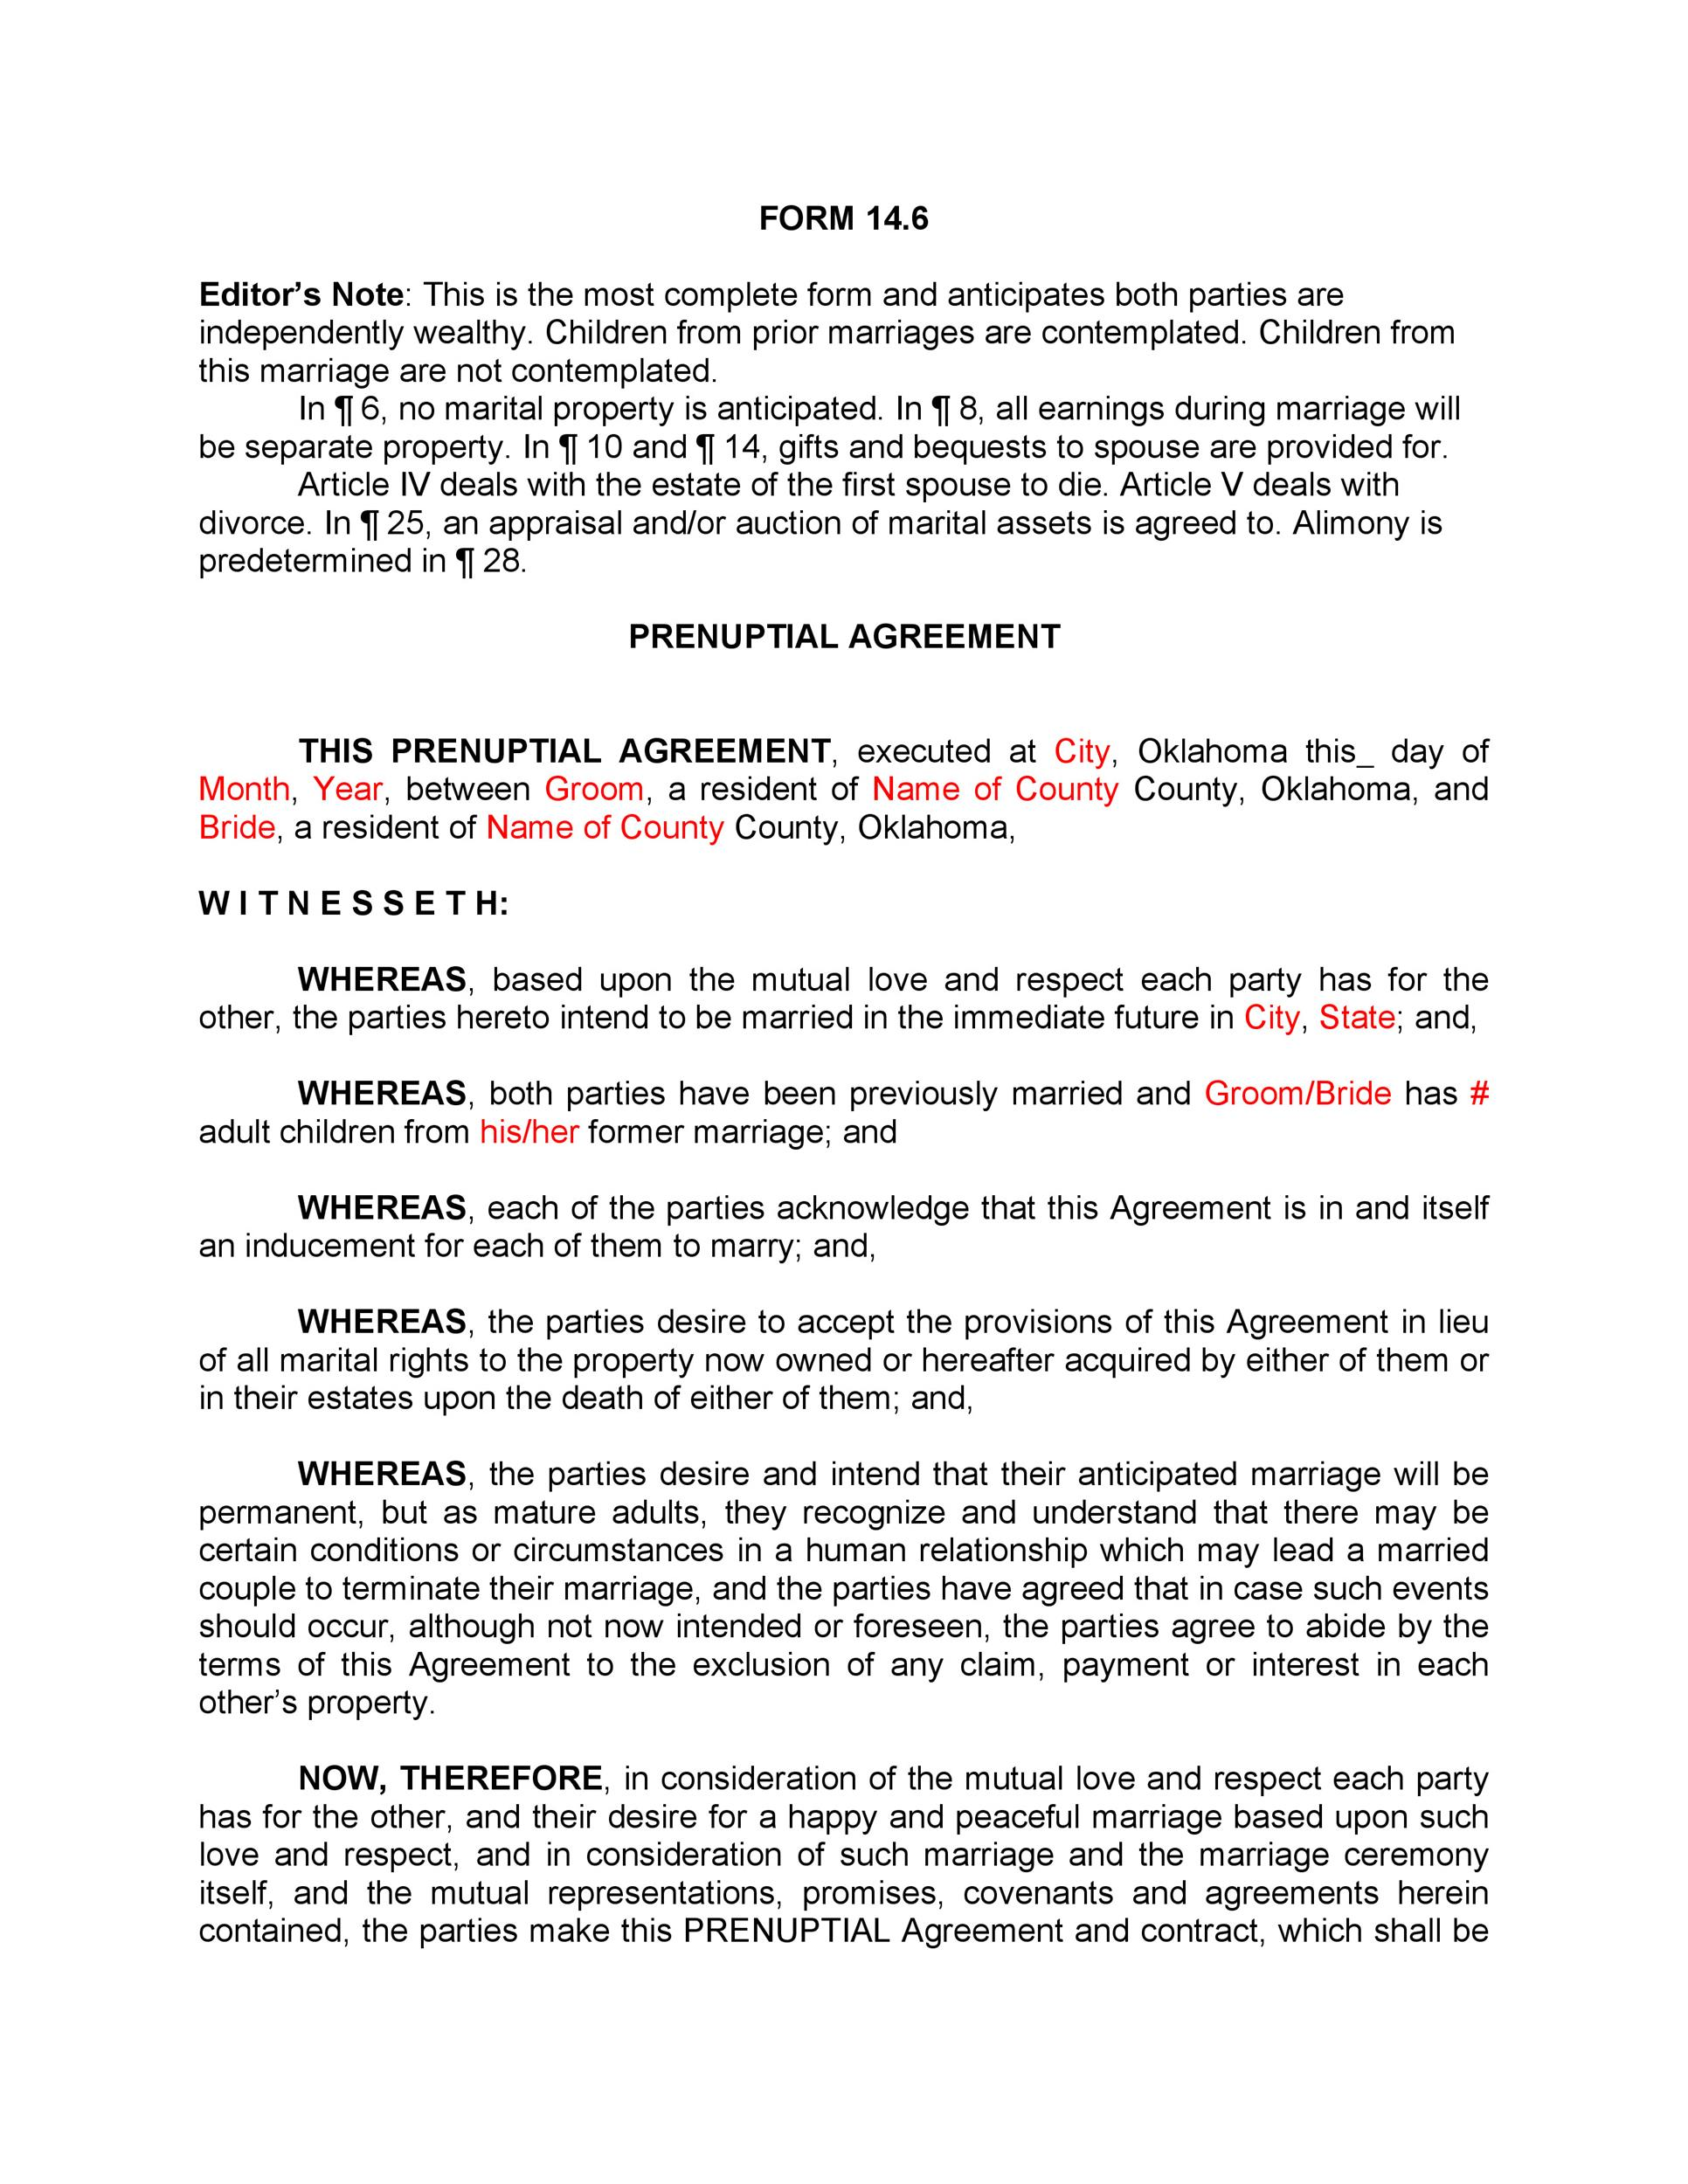 Free Prenuptial Agreement Template 29